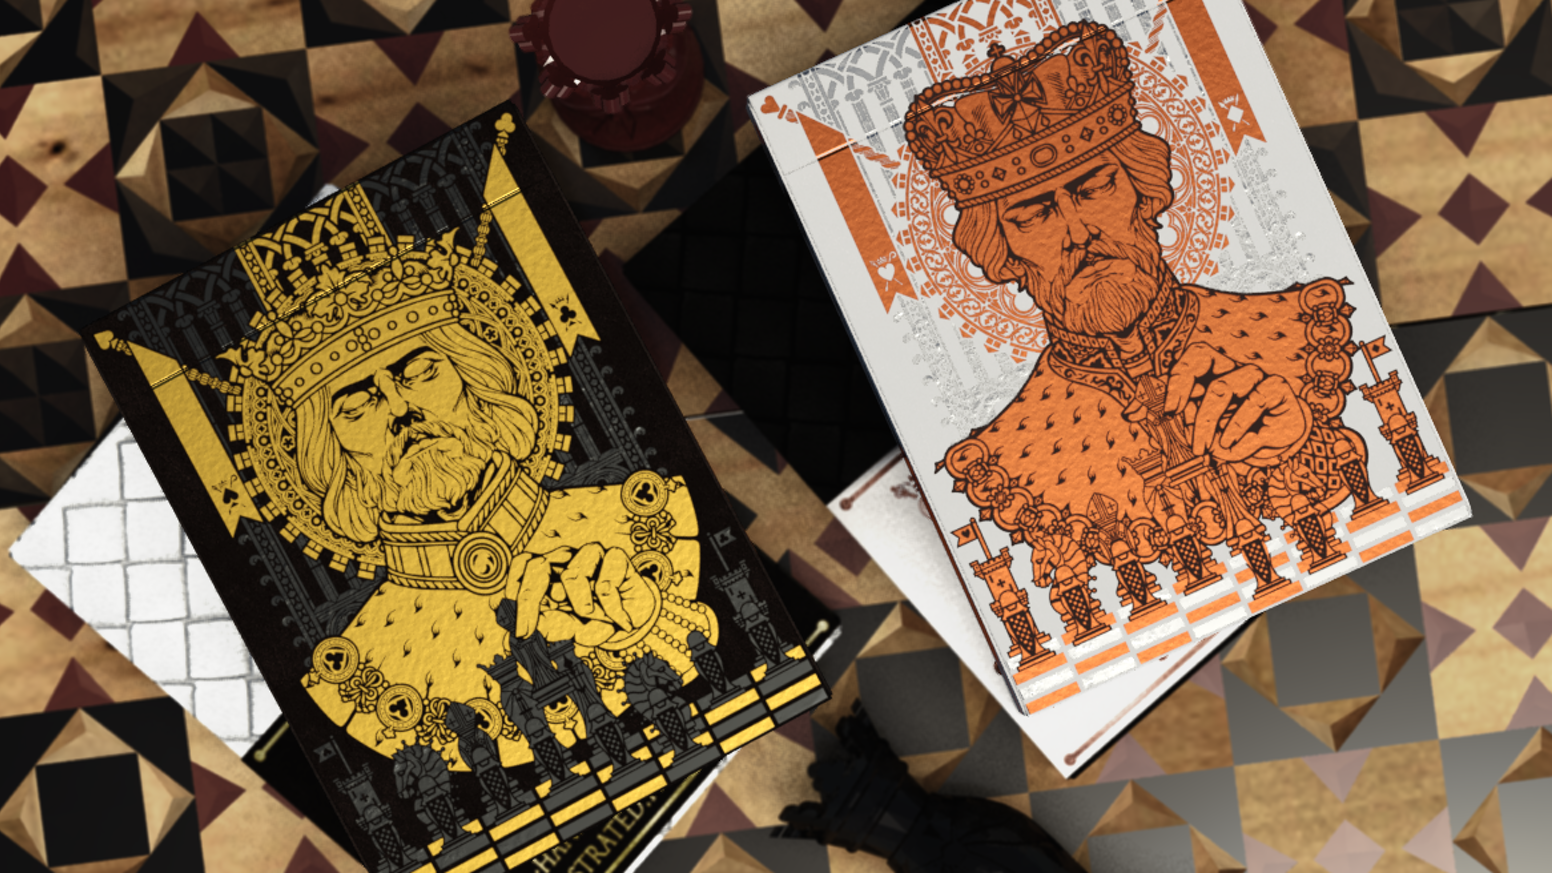 CHESS: The Game of the Kings, fully depicted in a 100% Custom deck of Playing Cards - 15 days campaign